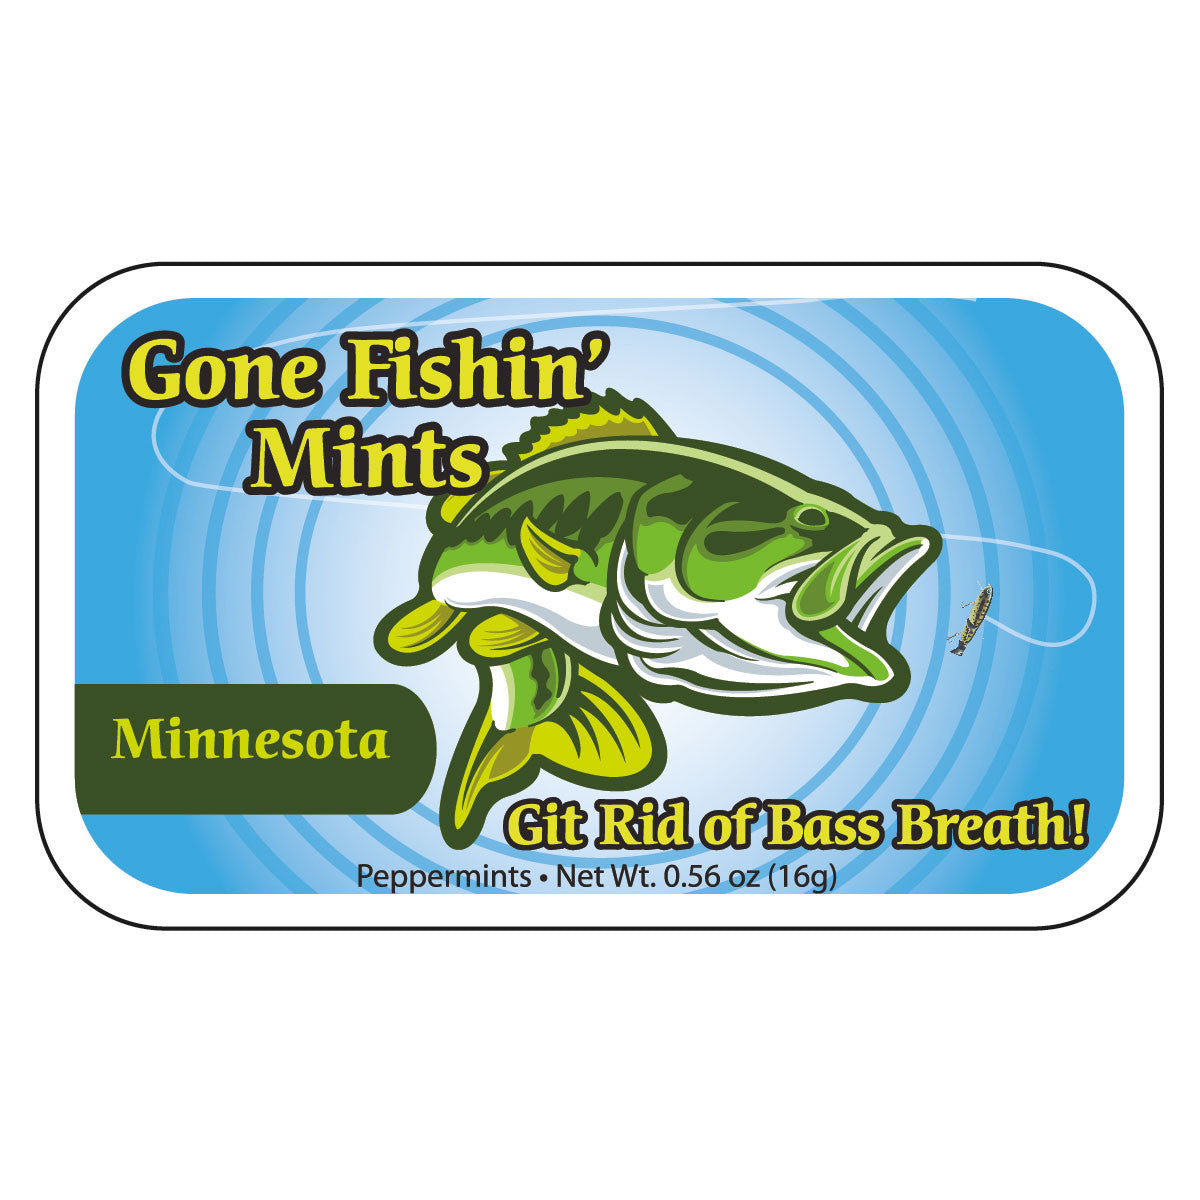 Gone Fishin' Minnesota - 0109S